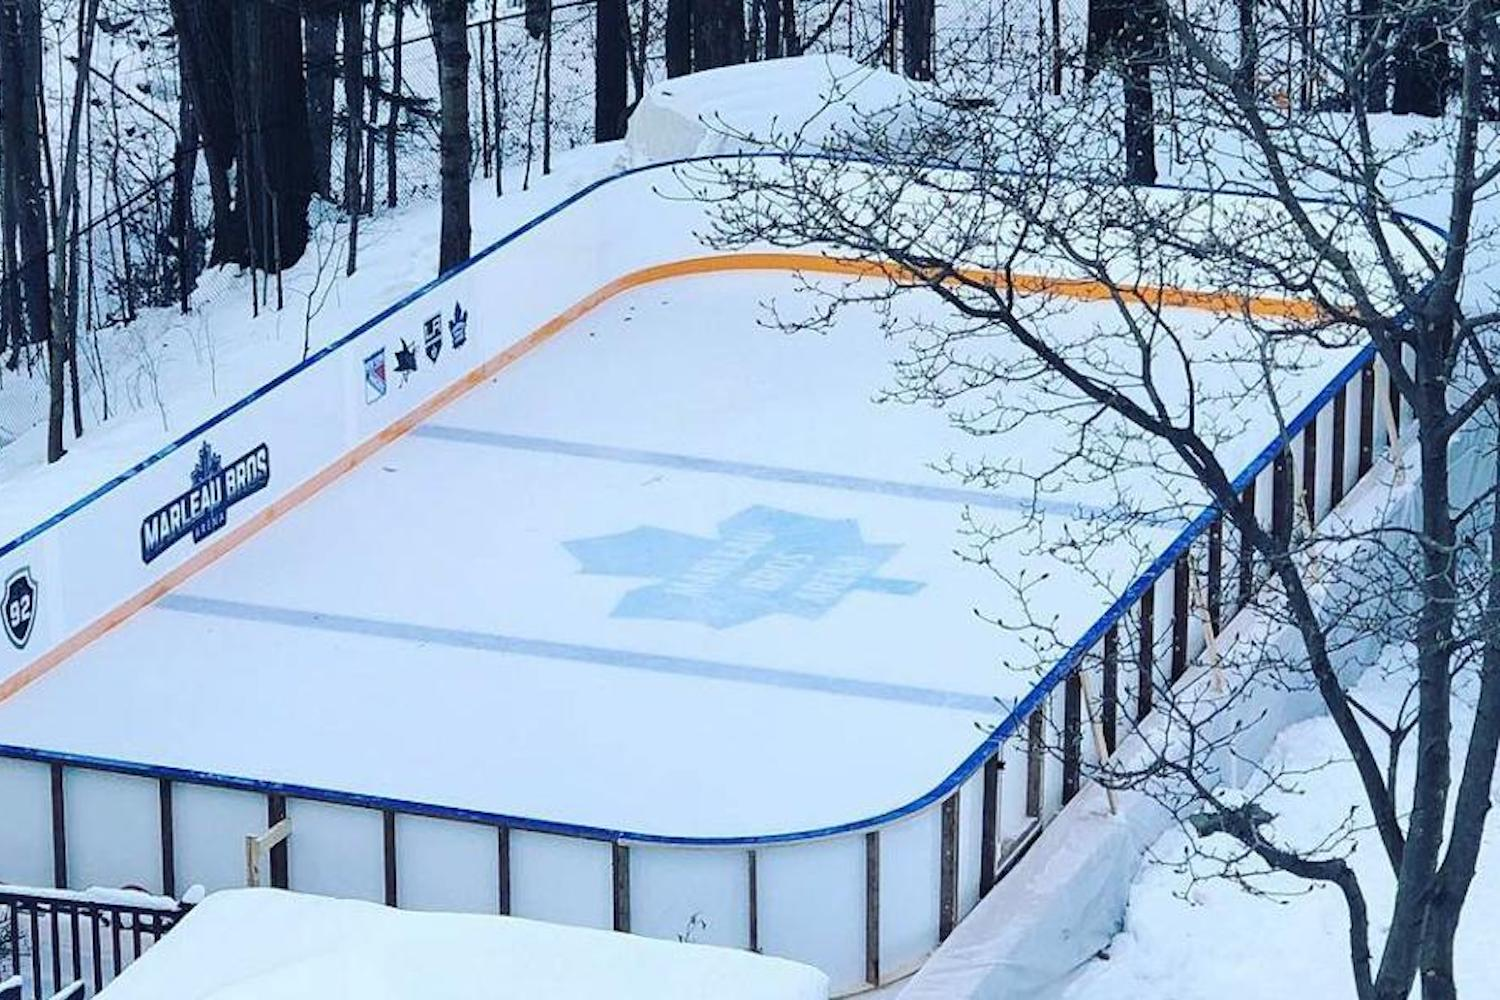 This Edmonton Dad Is Offering Very Impressive Rink Kits For Your Backyard This Winter Curiocity Group Inc Outdoor rink kit edmonton